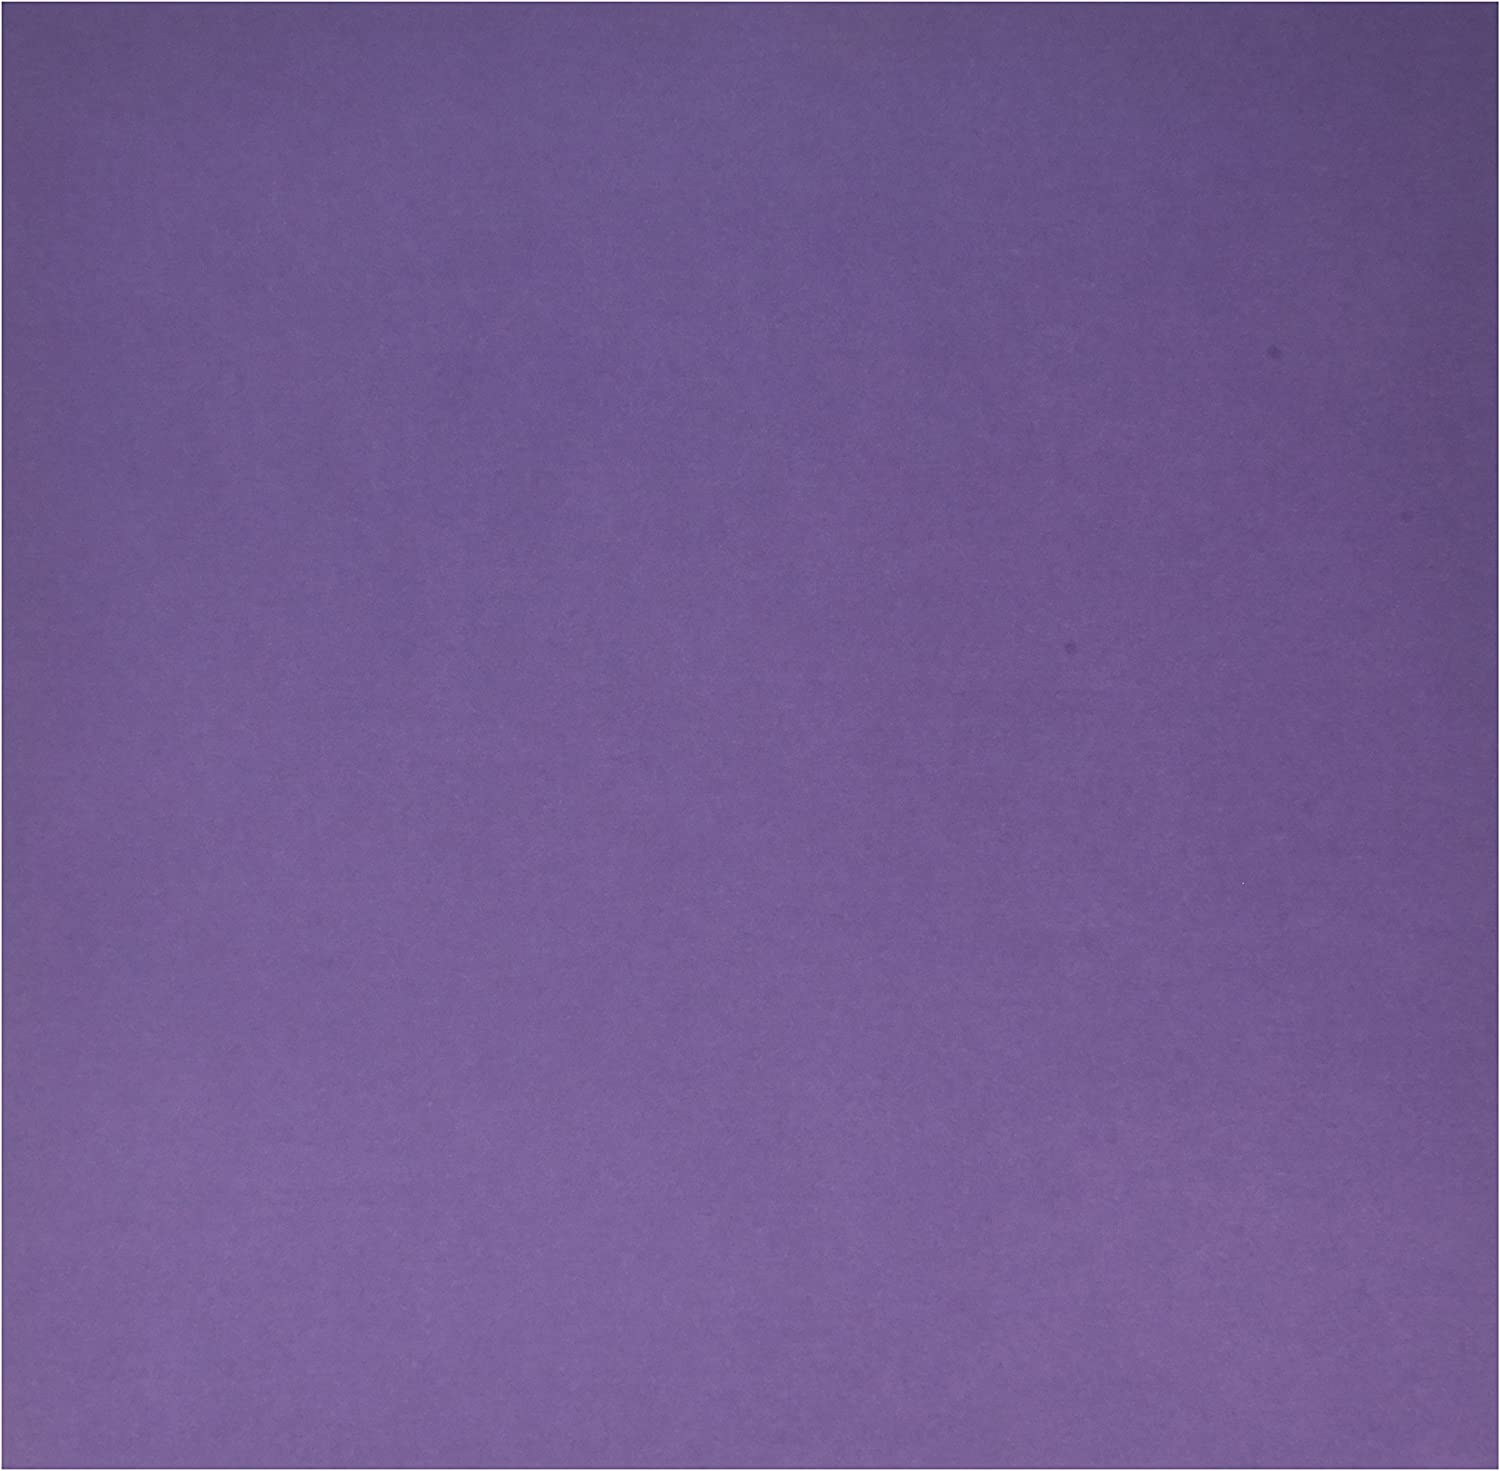 American Crafts 27109106 Smooth Cardstock 12X12-Plum 25 per Pack